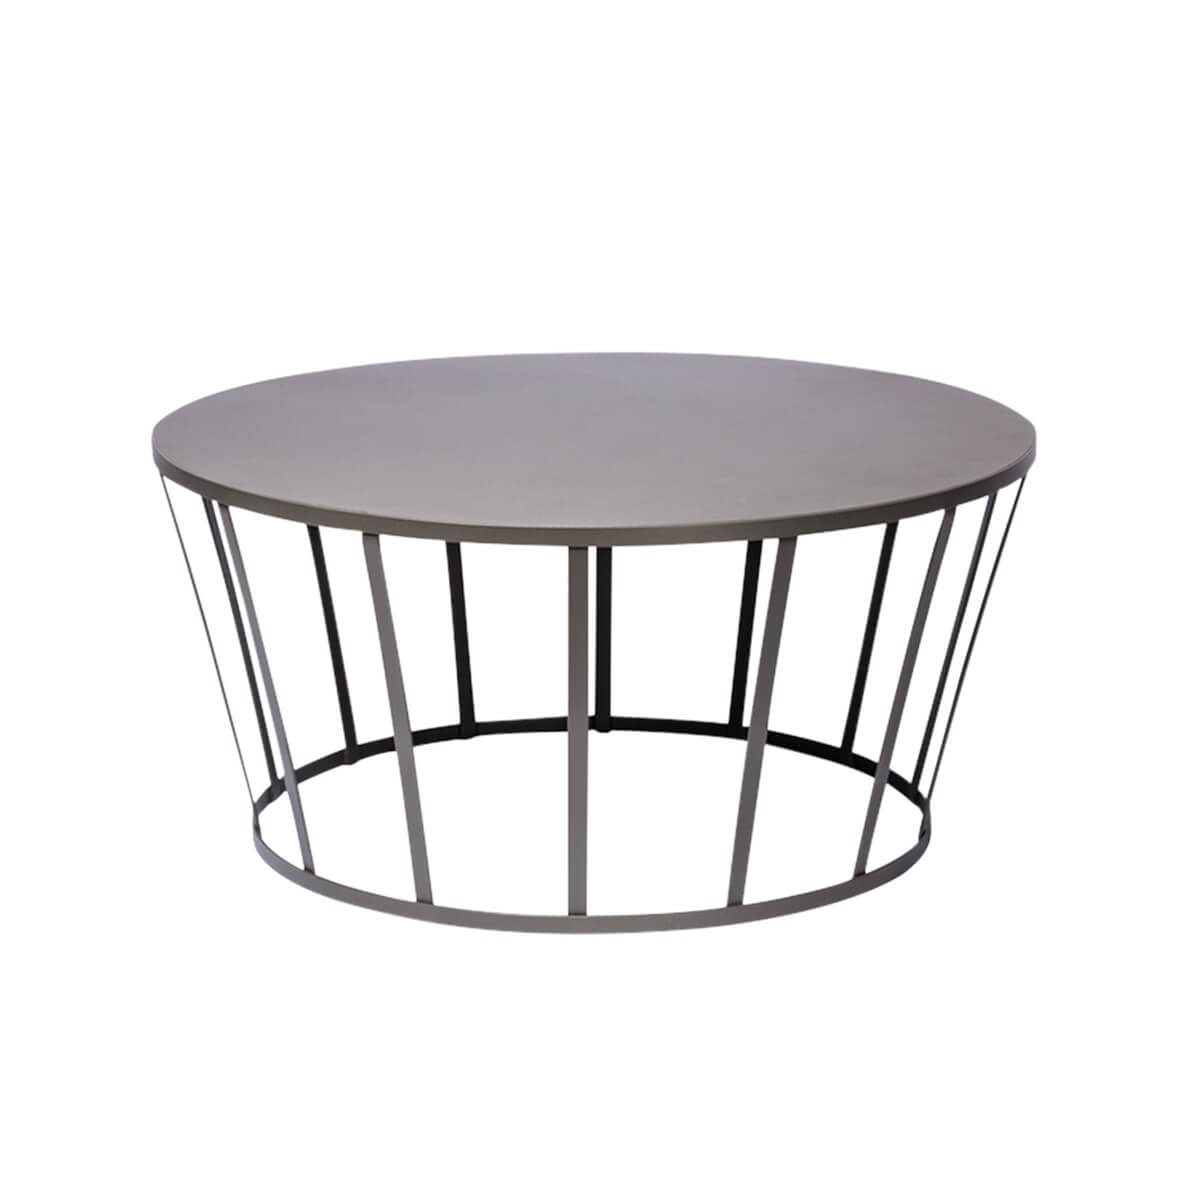 Table basse hollo gris petite friture pas cher grandes - Table basse gris anthracite ...